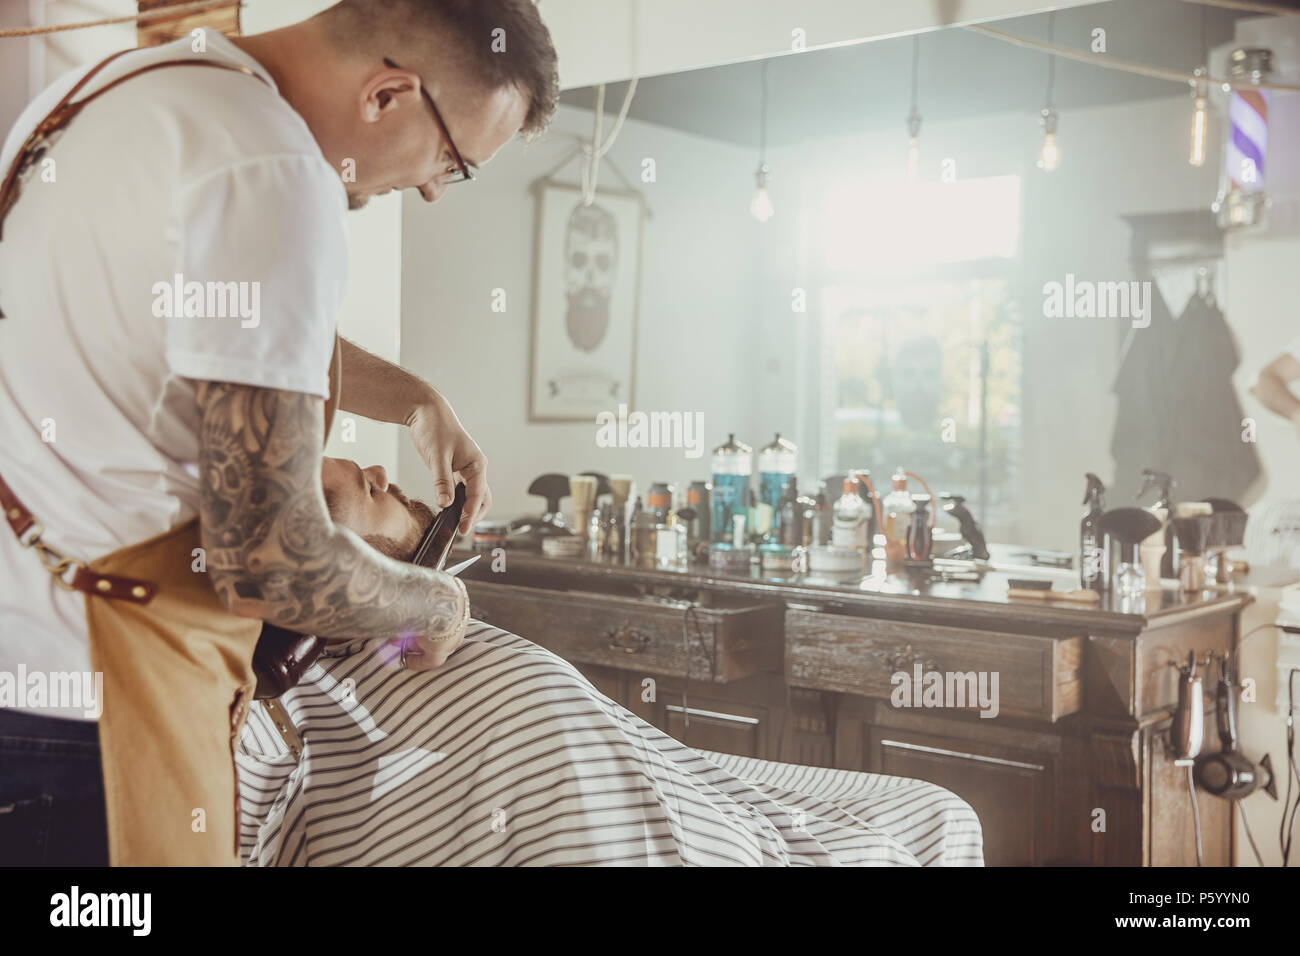 Barber cuts the client's beard in his barber shop. Photo in vintage style - Stock Image